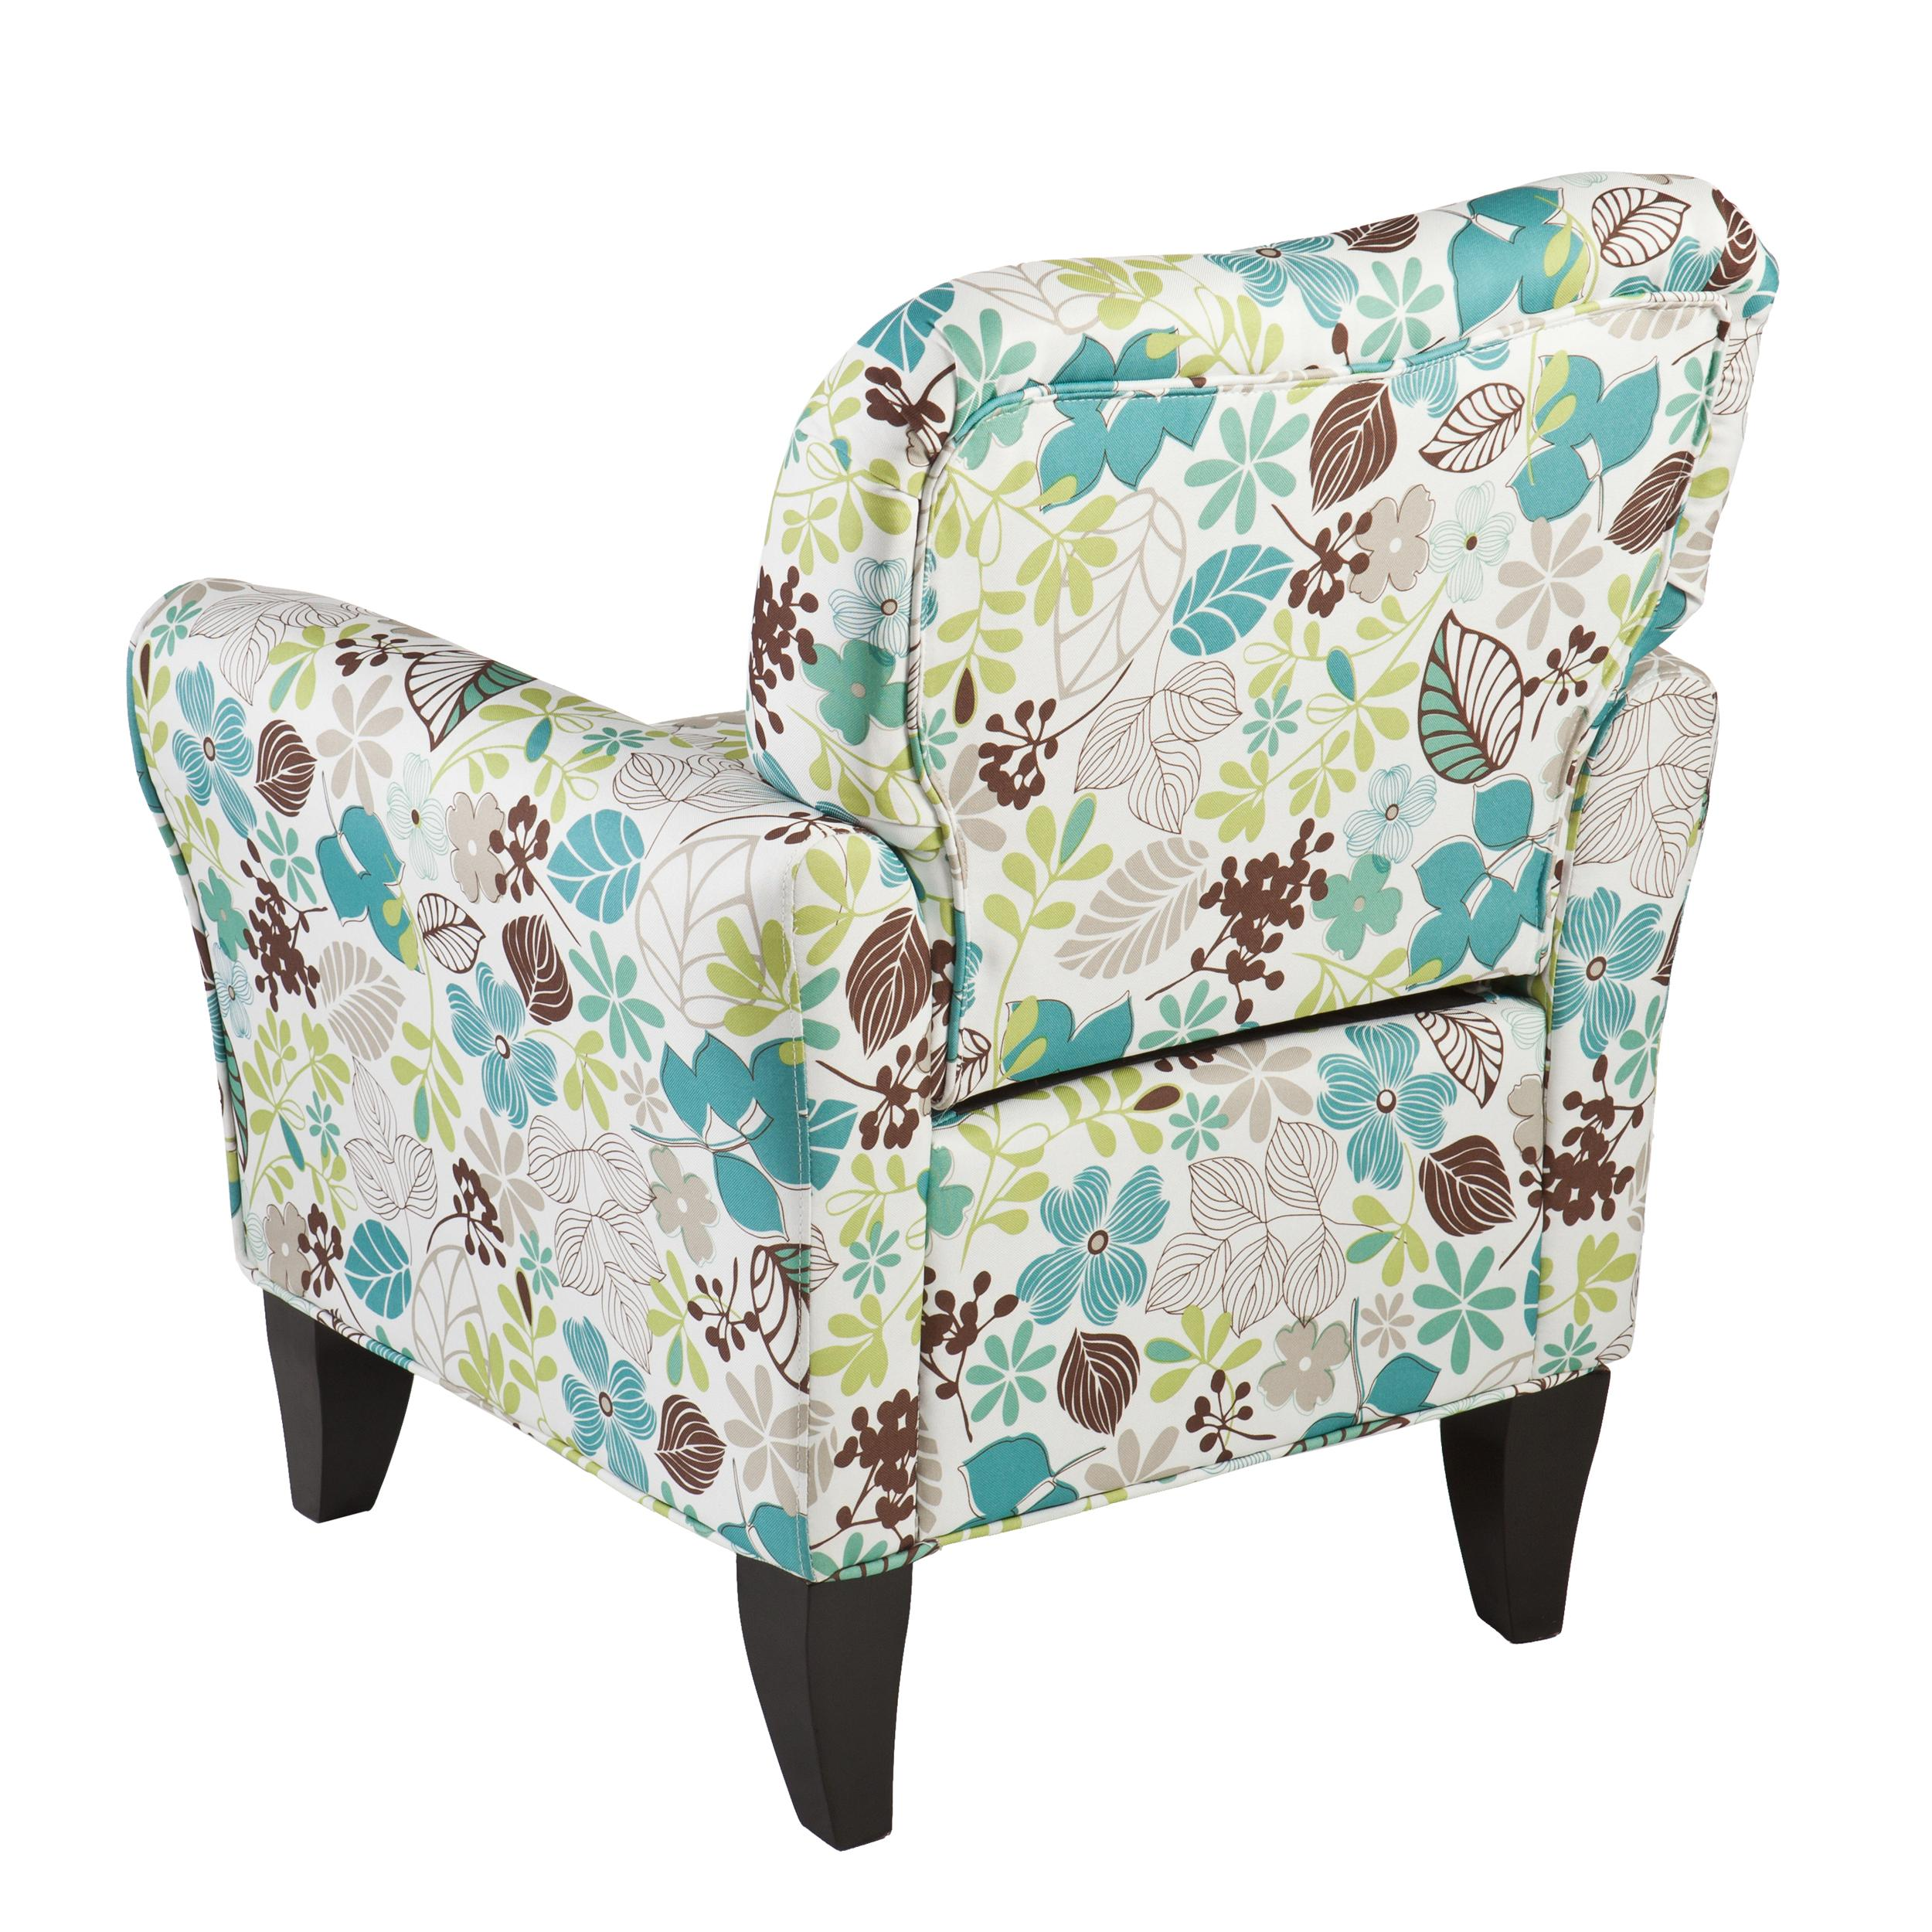 Floral Chairs Amazon Southern Enterprises Dahlia Upholstered